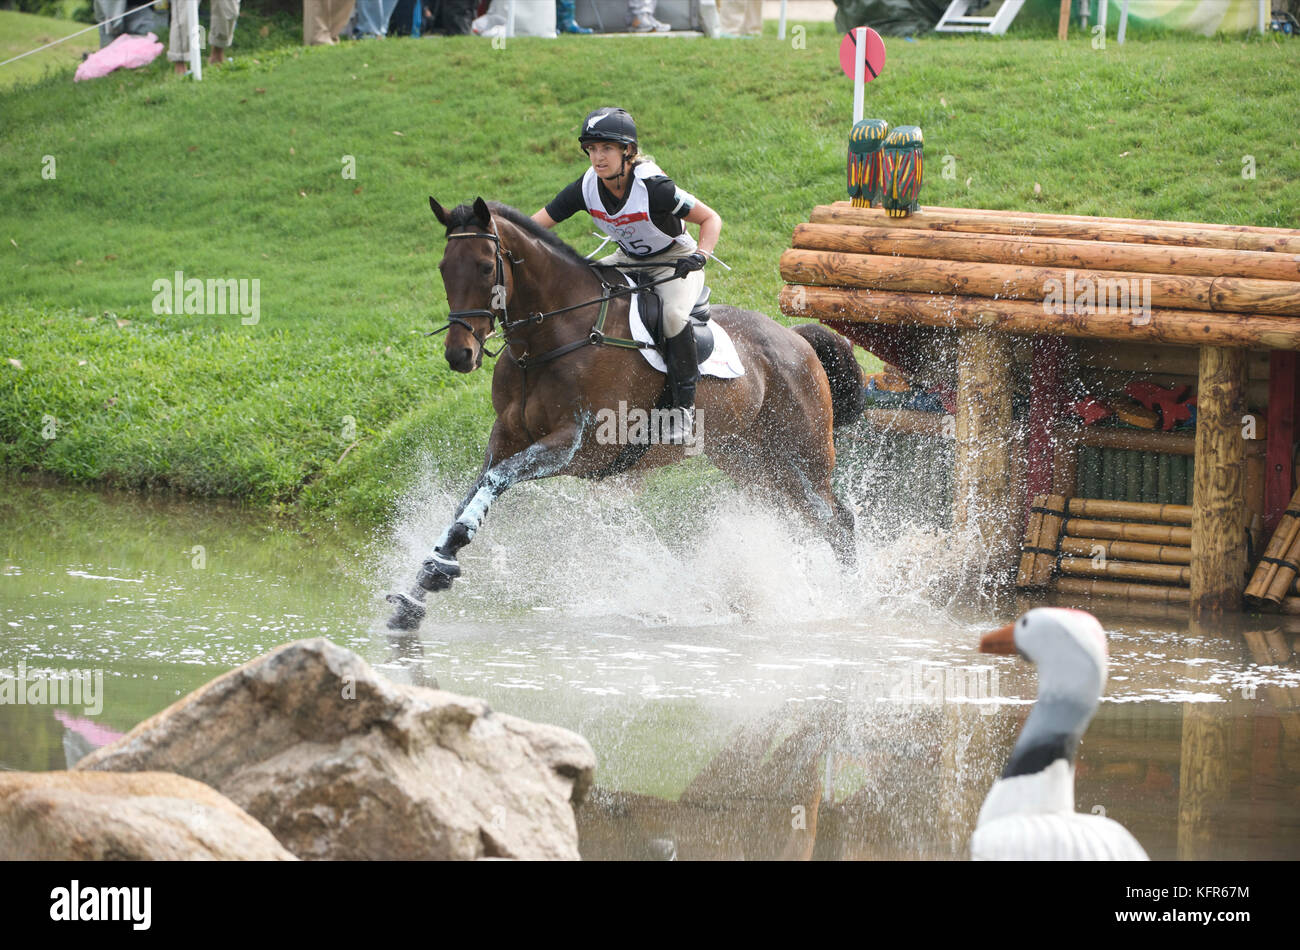 Olympic Games 2008, Hong Kong (Beijing Games) August 2008, Heelan Tompkins (NZL) riding Sugoi, eventing cross country - Stock Image